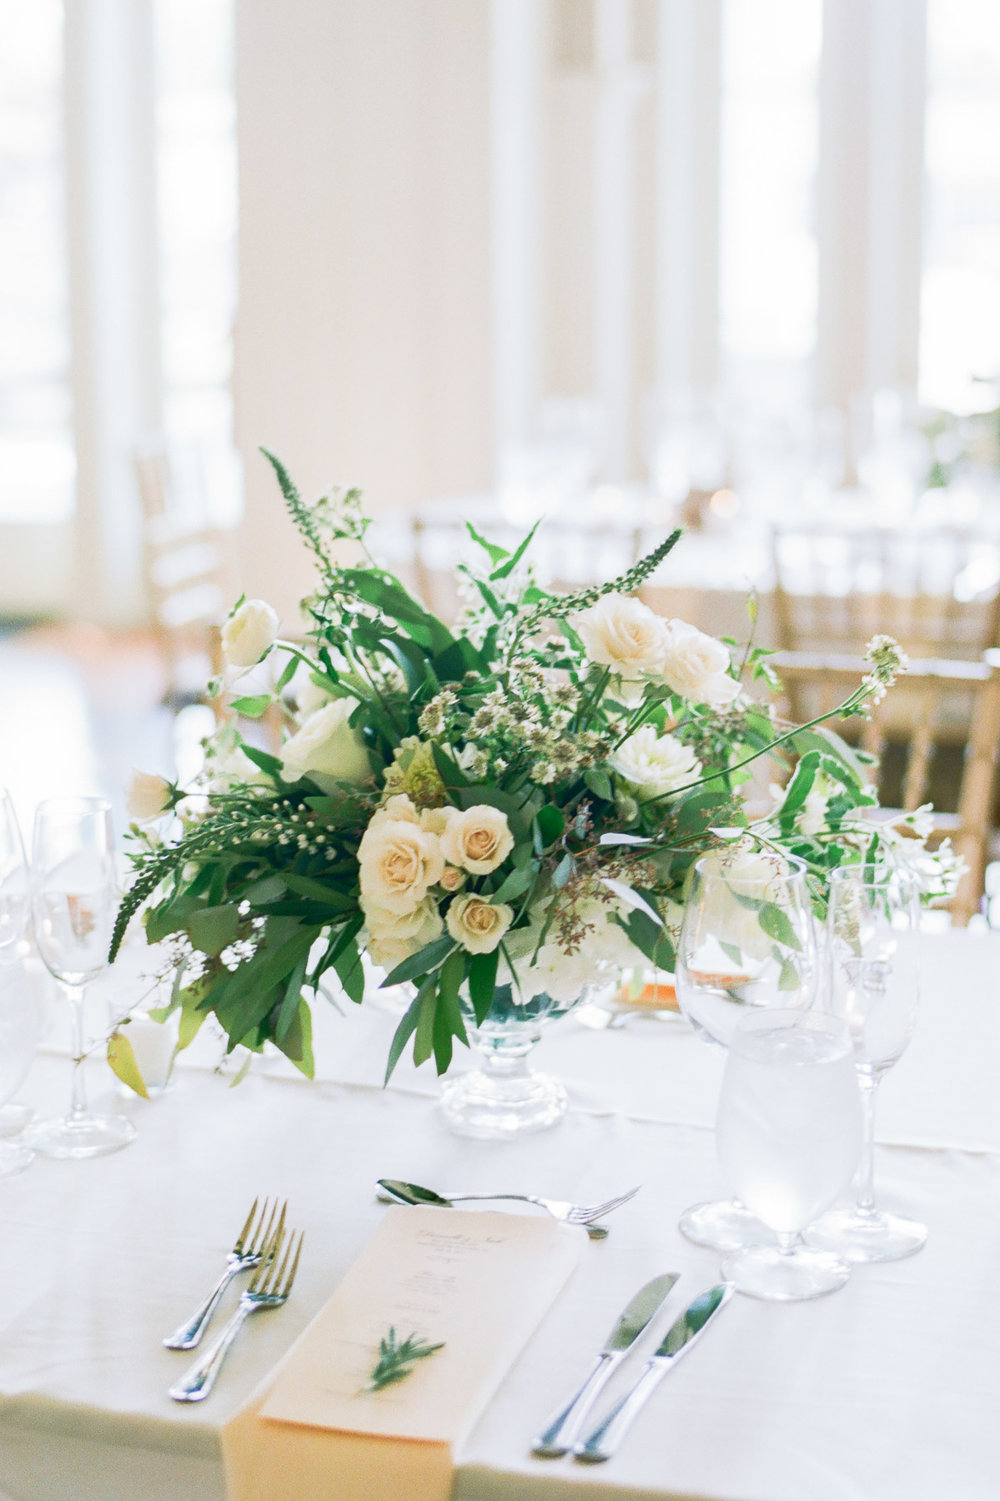 Green and white wedding centerpieces